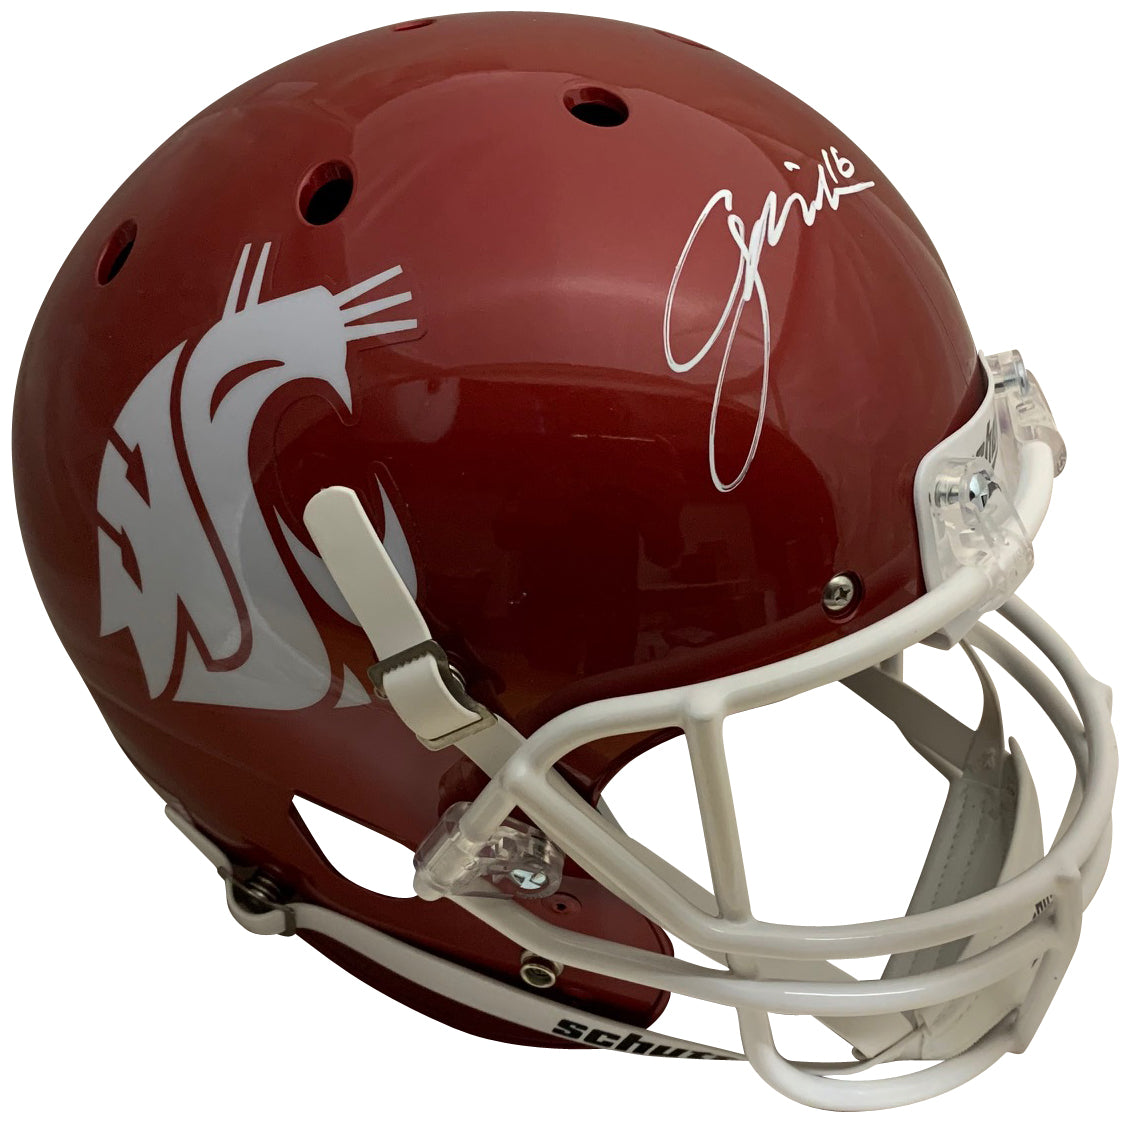 Gardner Minshew Autographed Washington State Cougars Signed Full Size Football Helmet Beckett BAS COA-Powers Sports Memorabilia